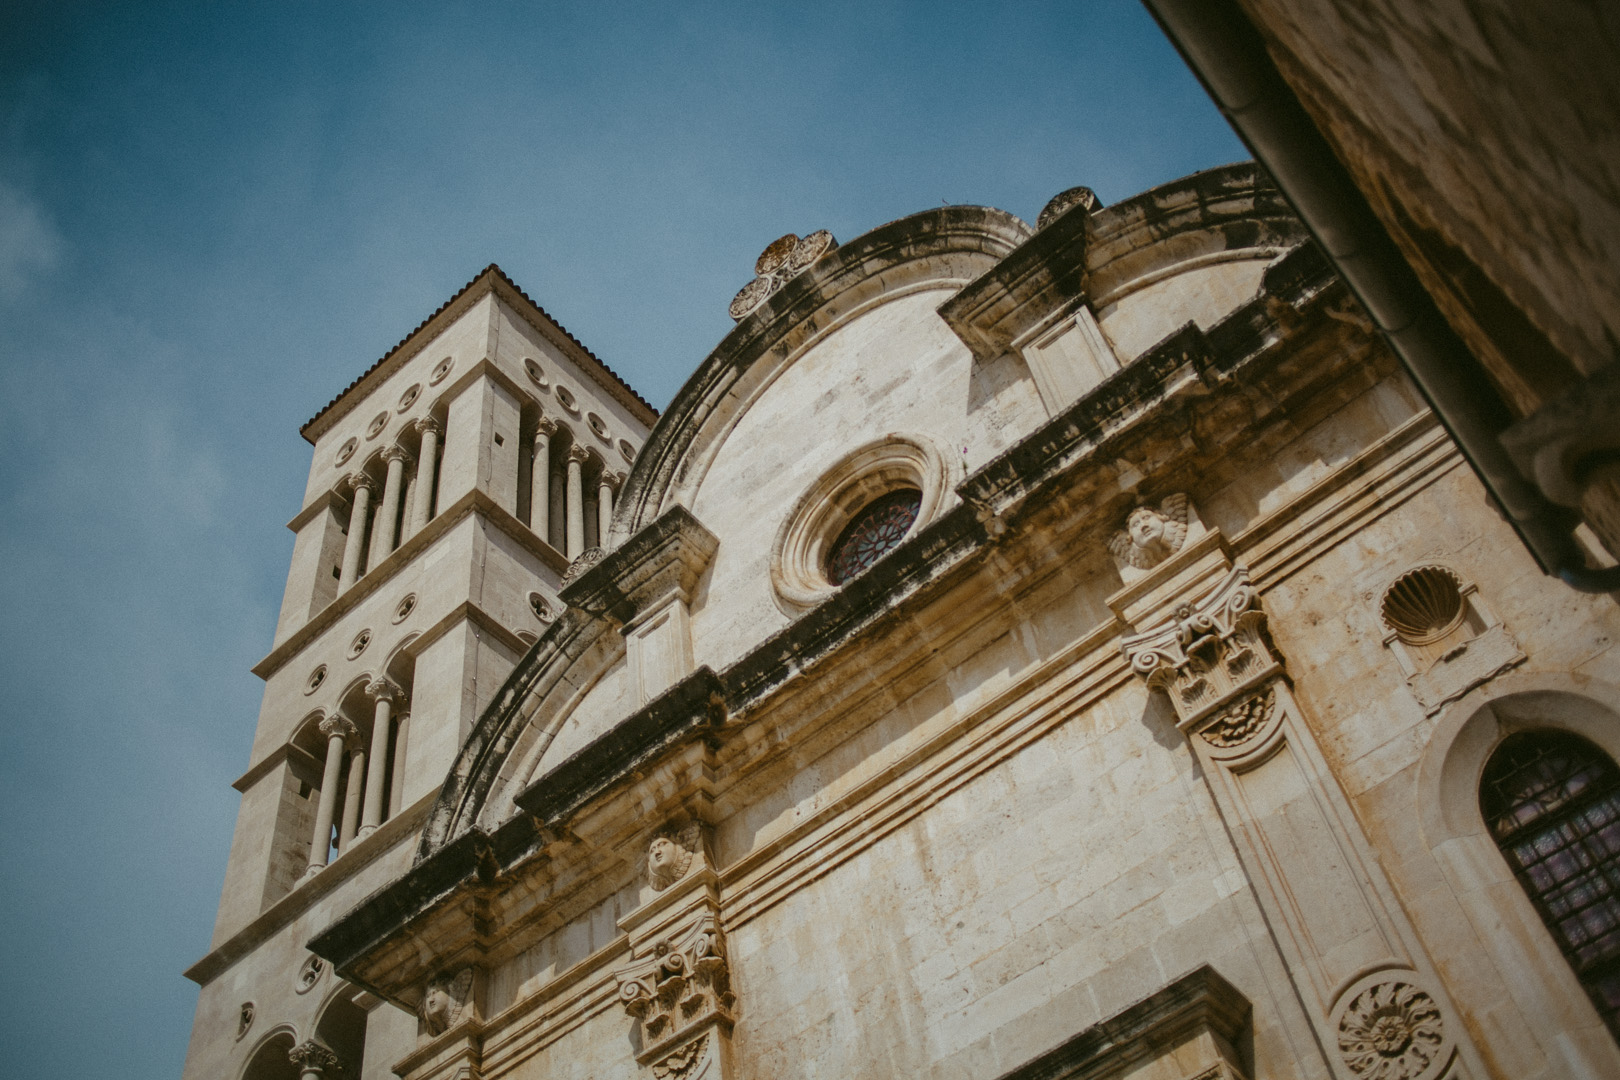 St. Stephen's Cathedral, Hvar